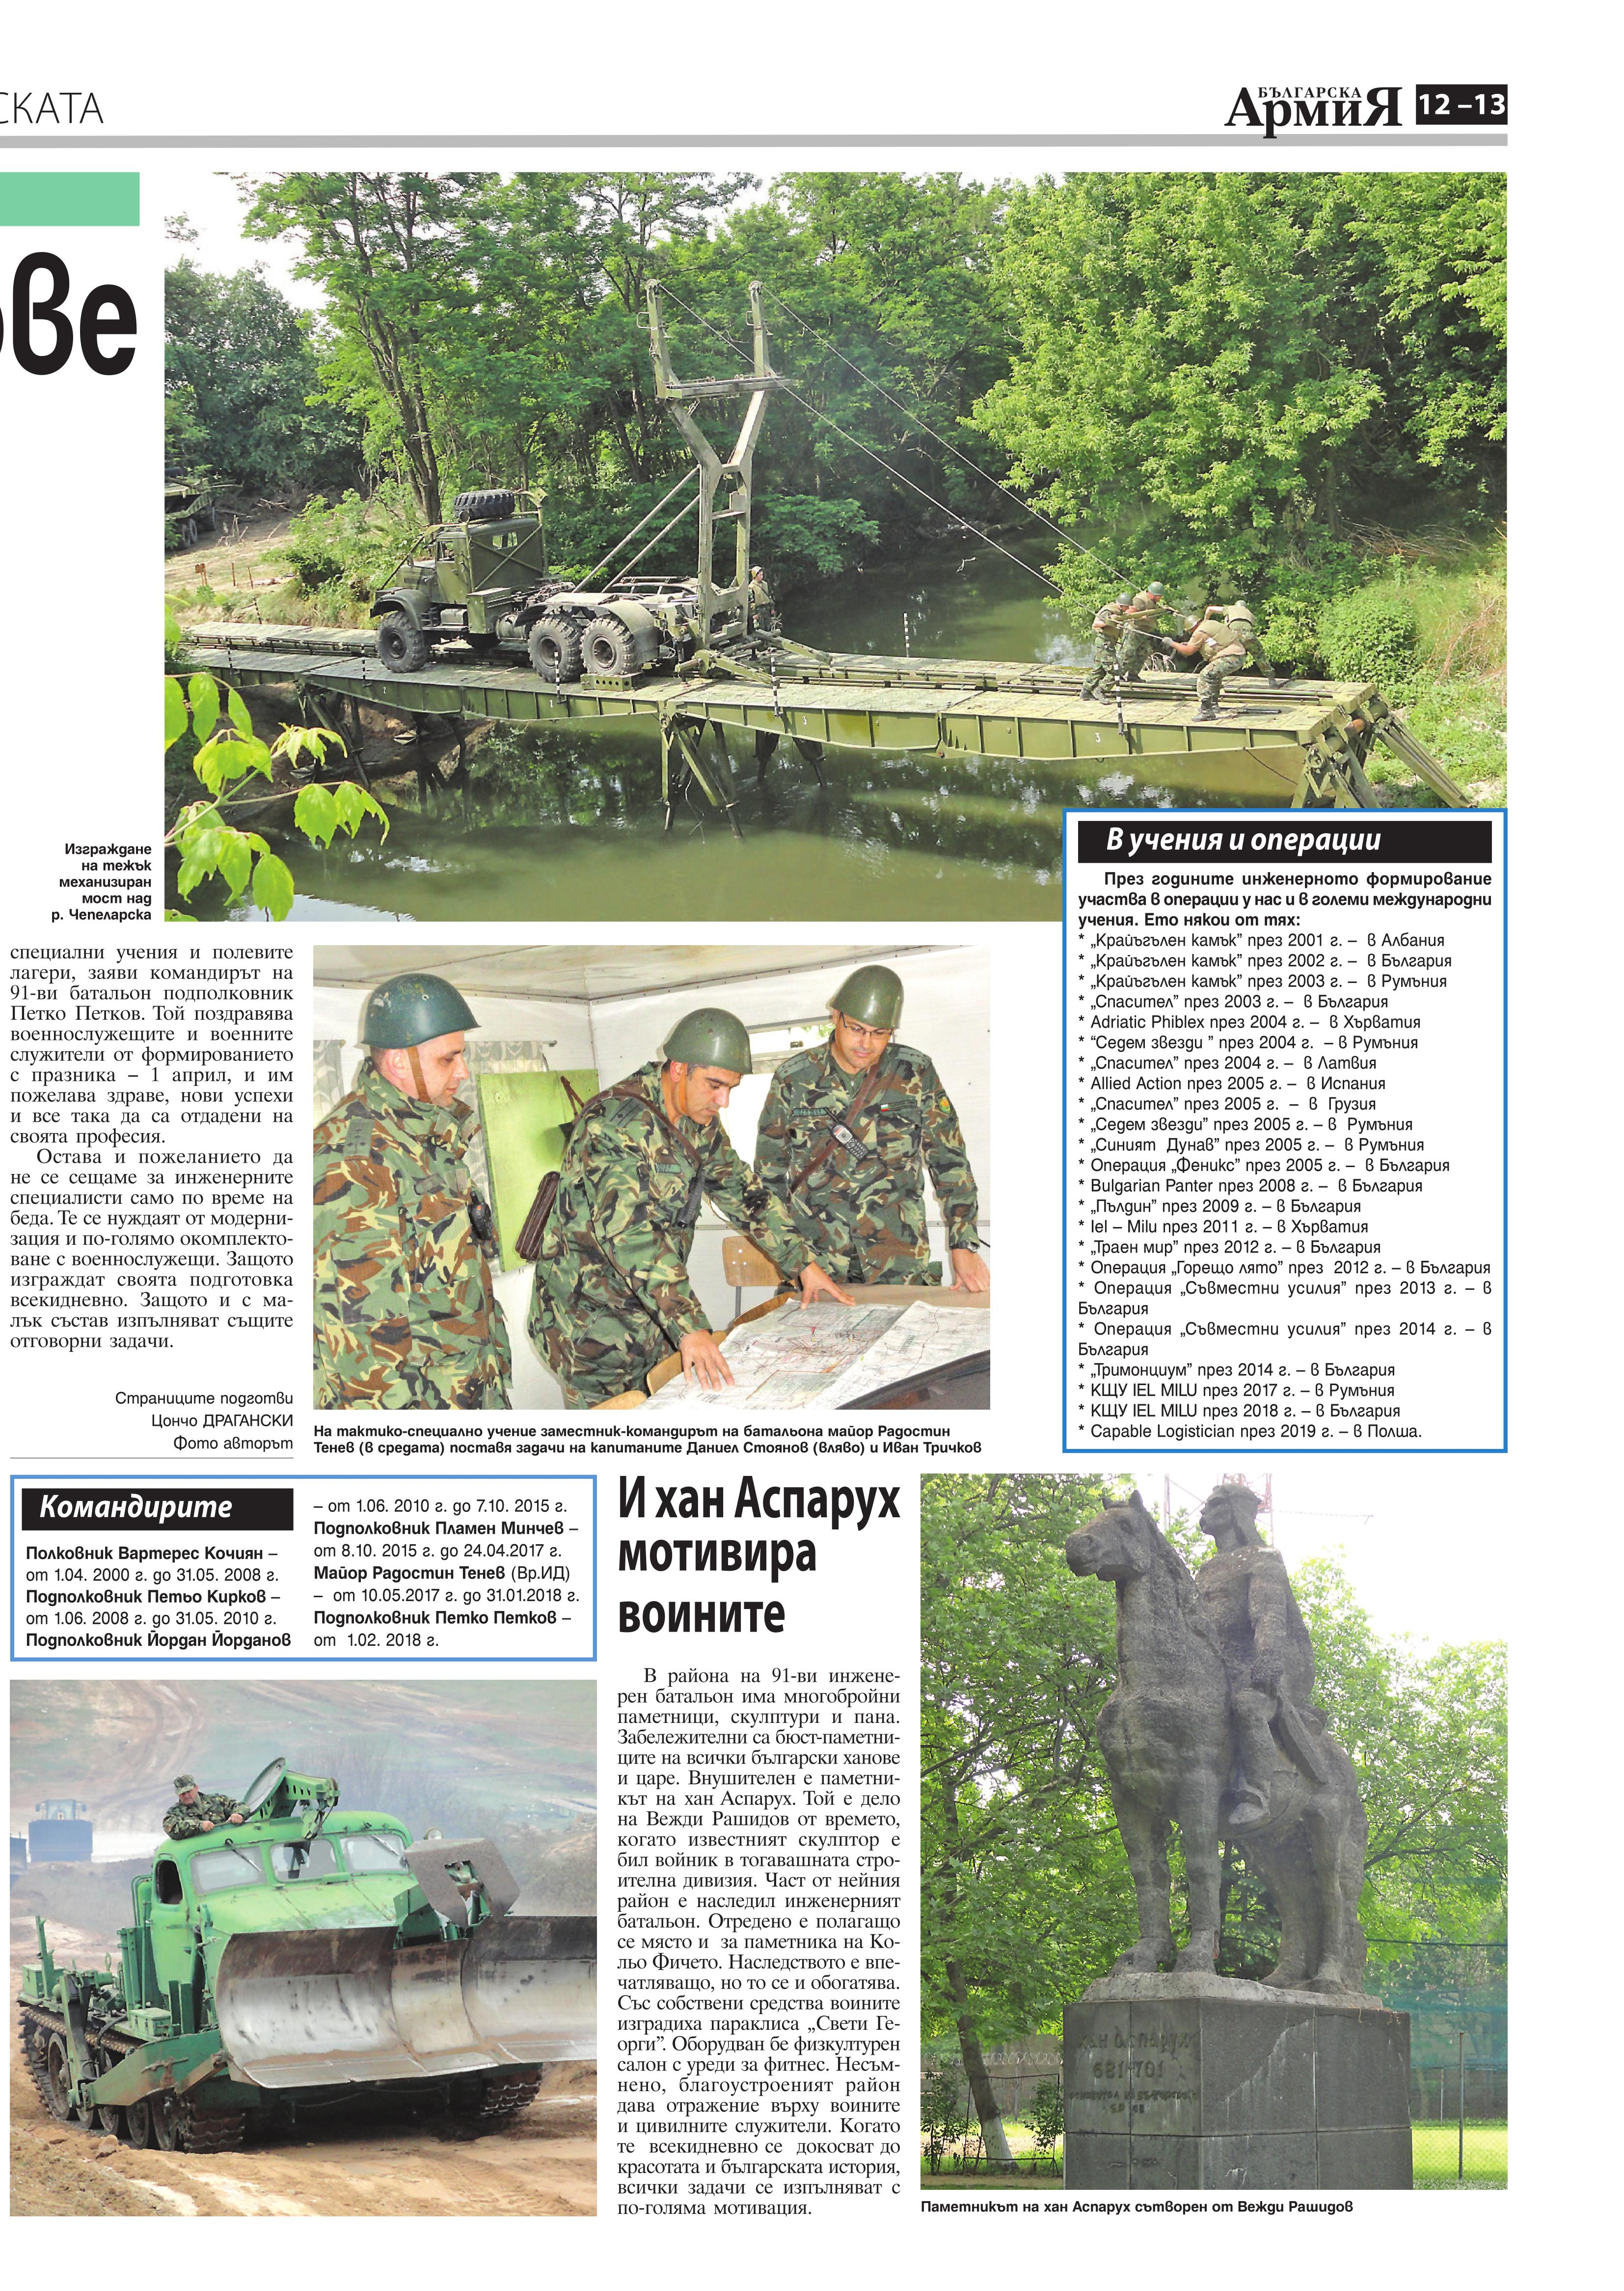 https://armymedia.bg/wp-content/uploads/2015/06/13.page1_-133.jpg